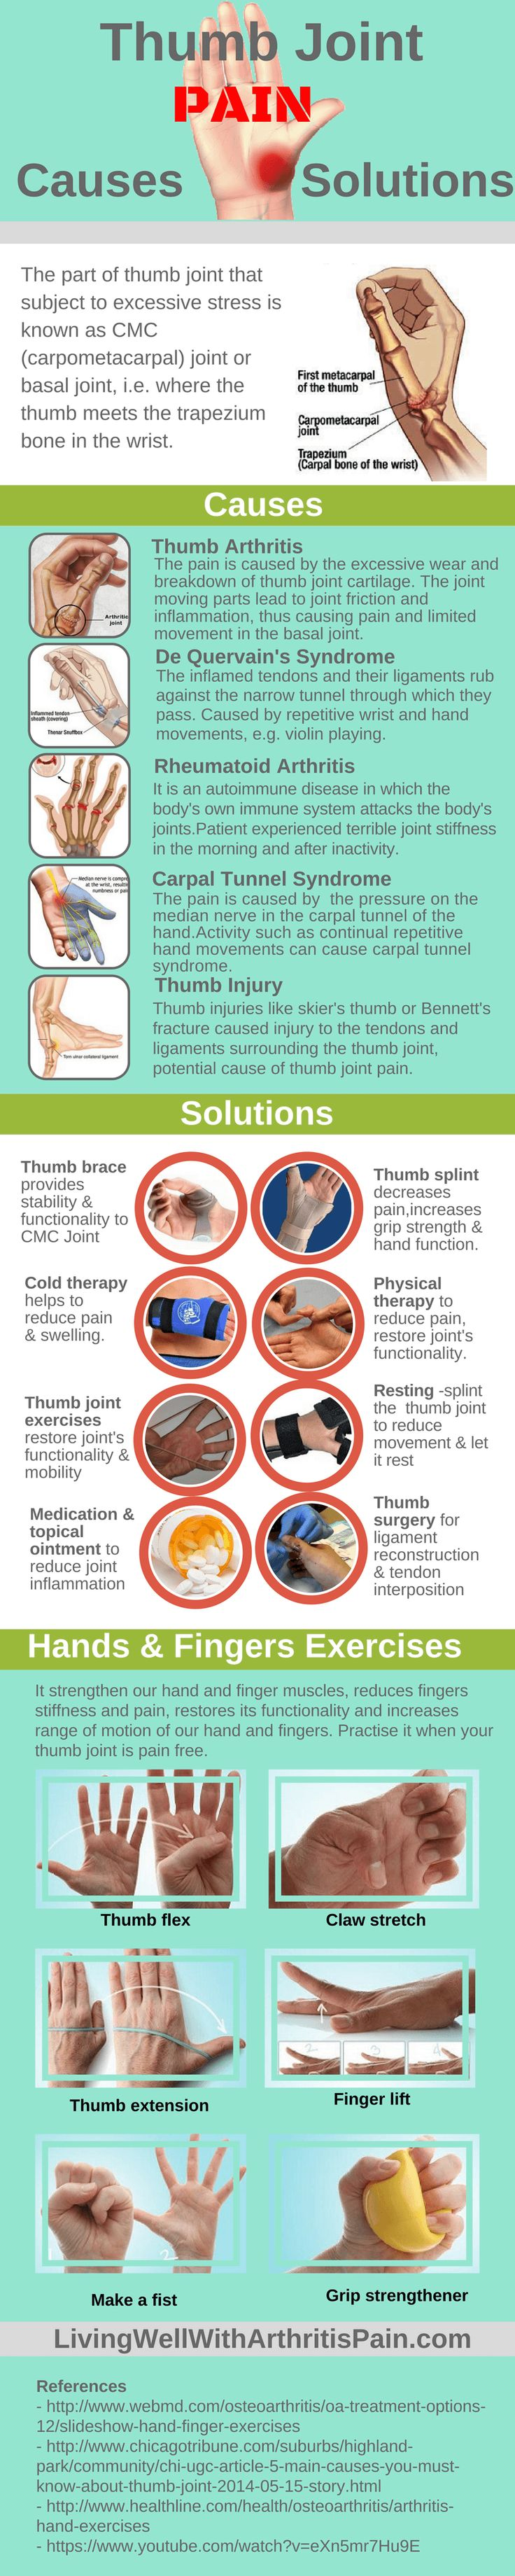 thumb-joint-pain-infographic Find it on http://Papr.Club as a Monthly Subscription